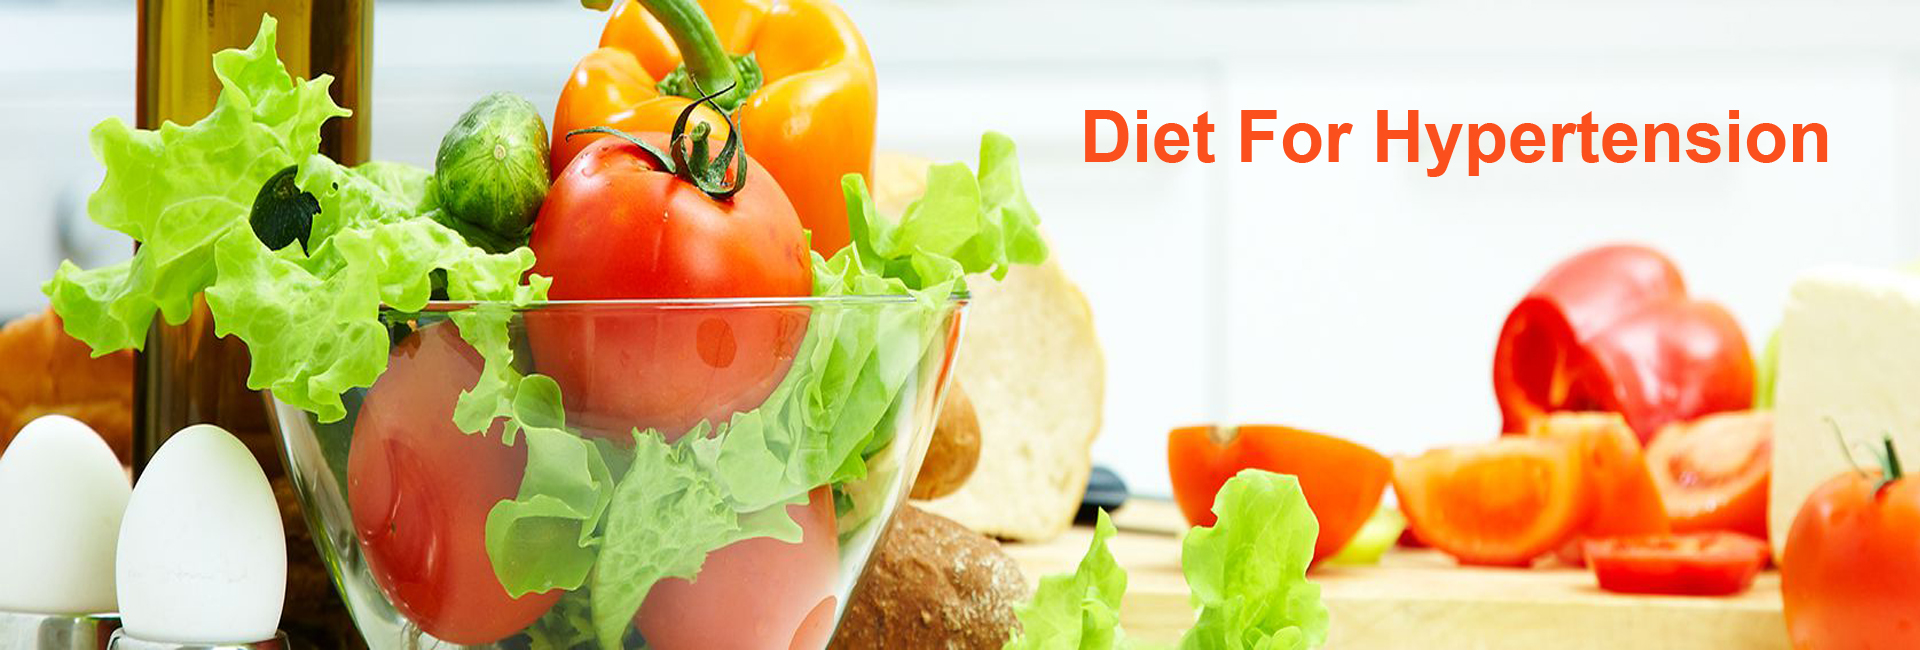 Diet For Hypertension In Al Bithnah